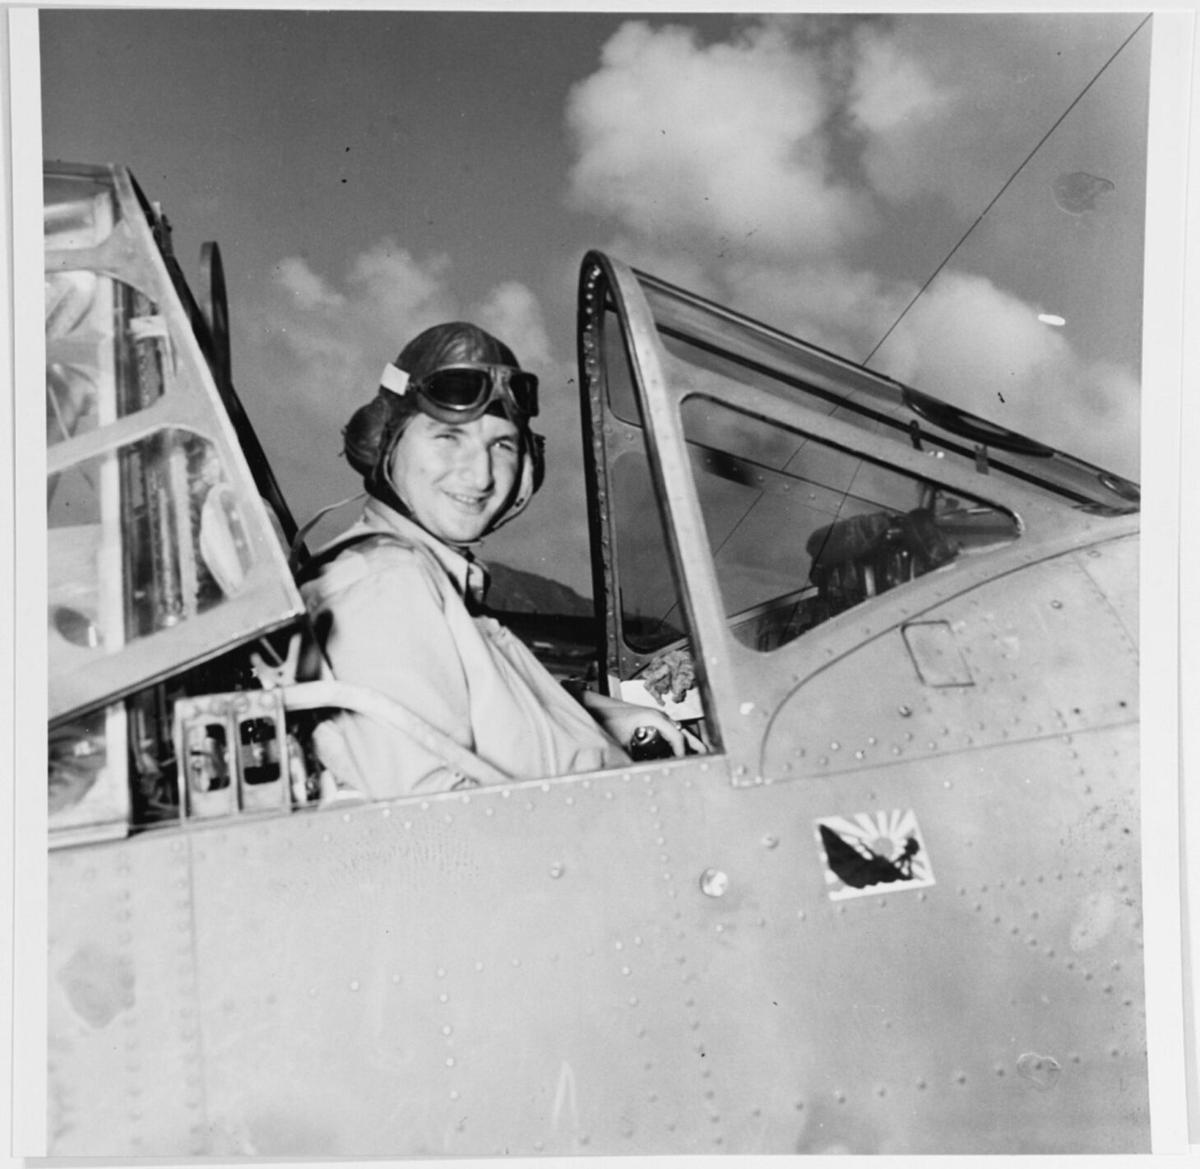 Posthumous Medal of Honor sought for pilot